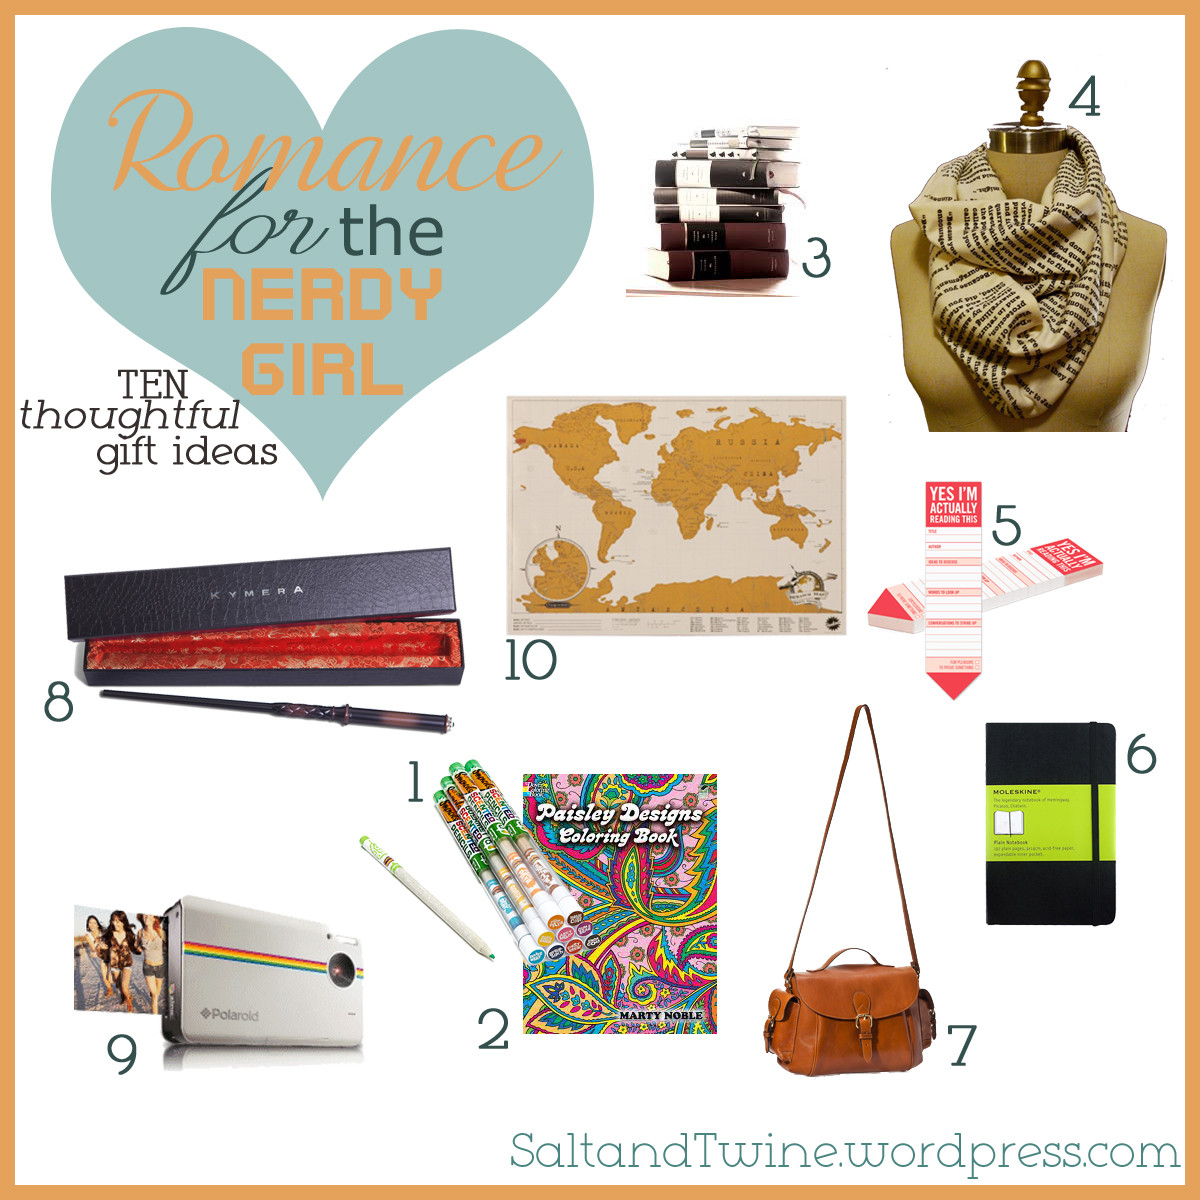 Best ideas about Nerdy Gift Ideas . Save or Pin Valentine Confessions of a Nerdy Girl & 10 Gift Ideas Now.